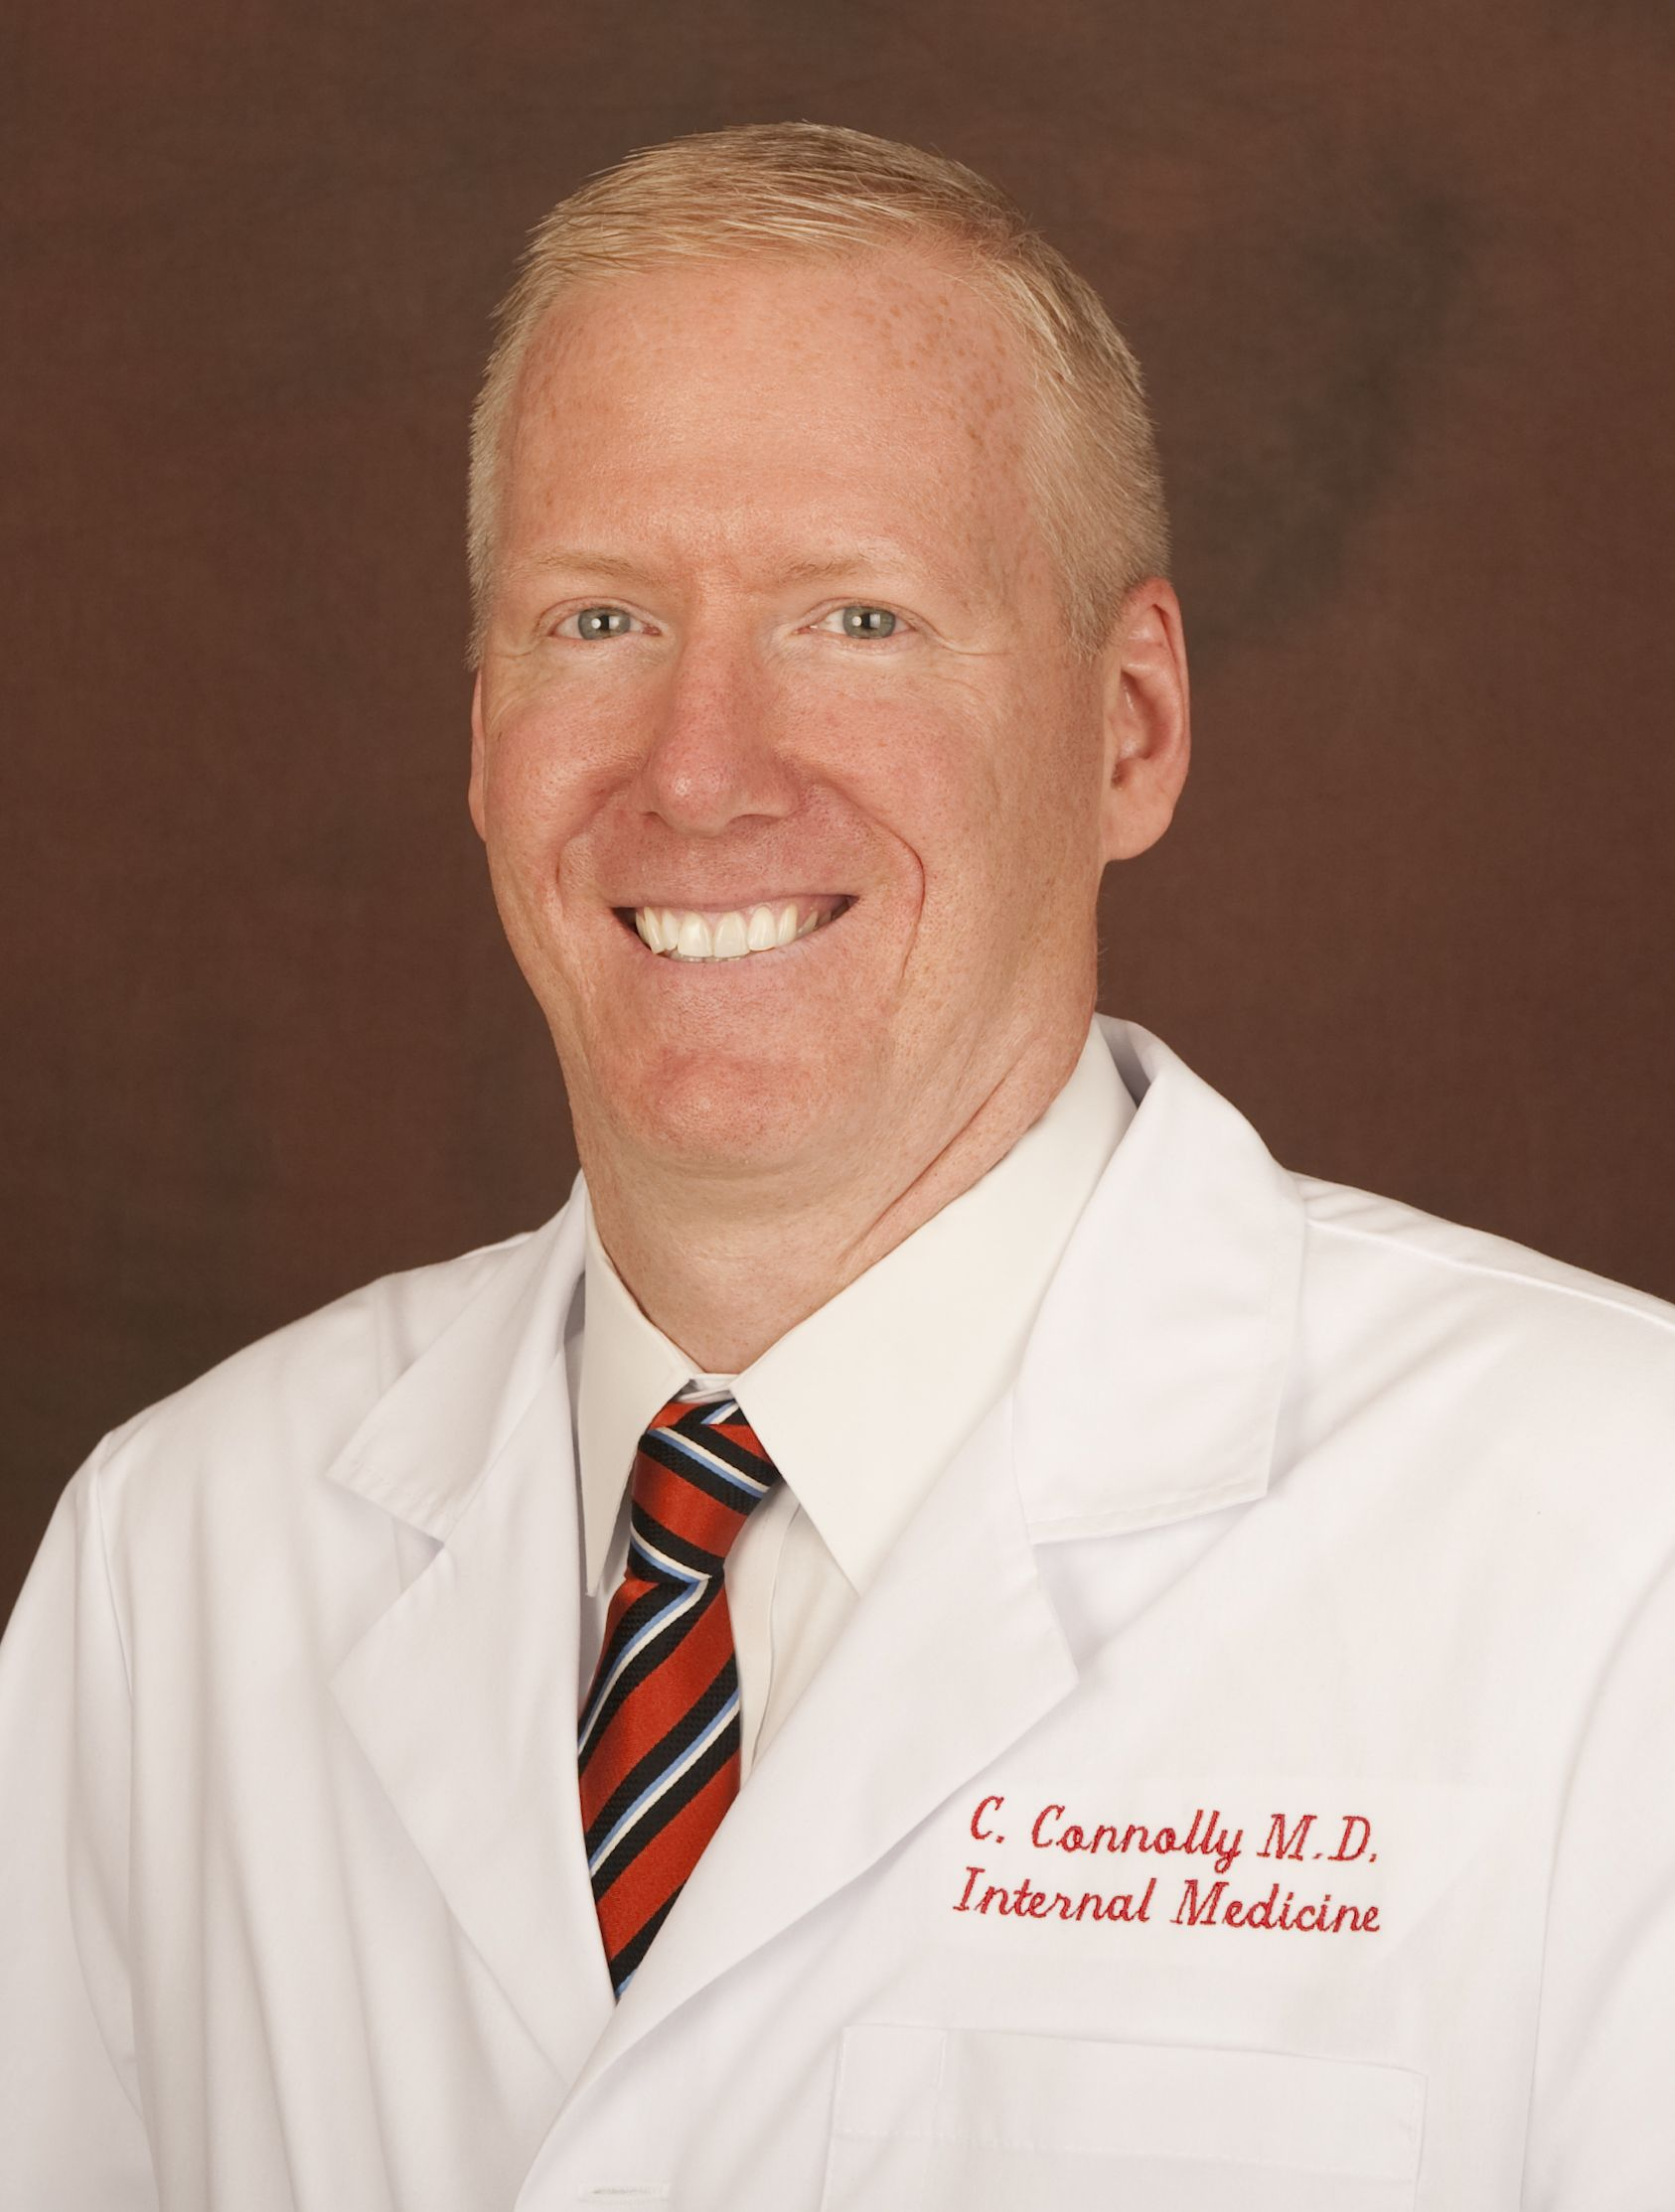 Christopher connolly md board certified internist